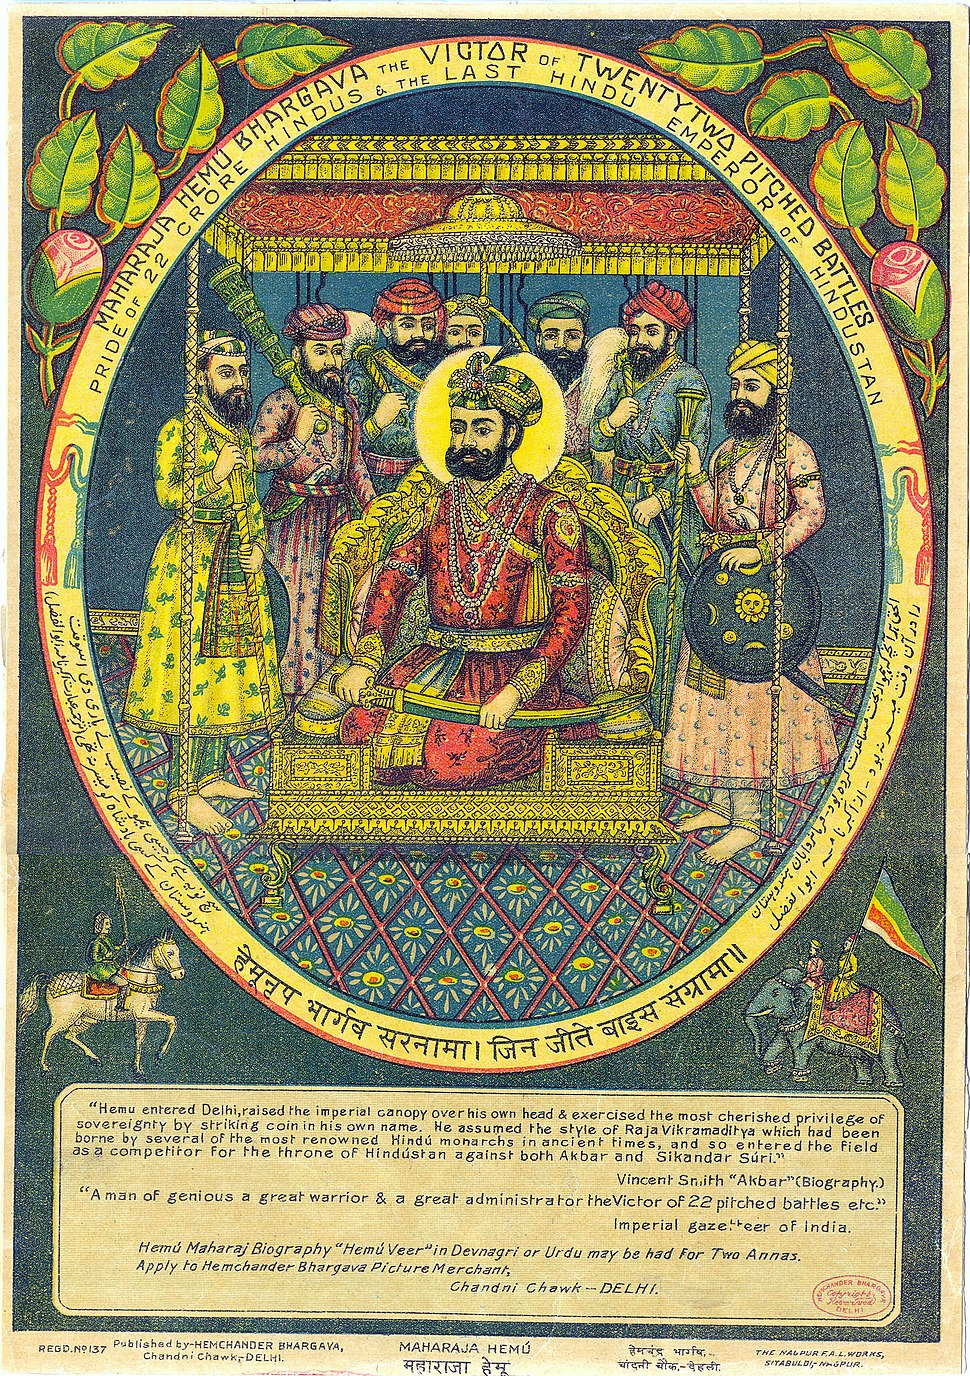 Maharaja Hemu Bhargava - Victor of Twenty Two Pitched Battles, 1910s